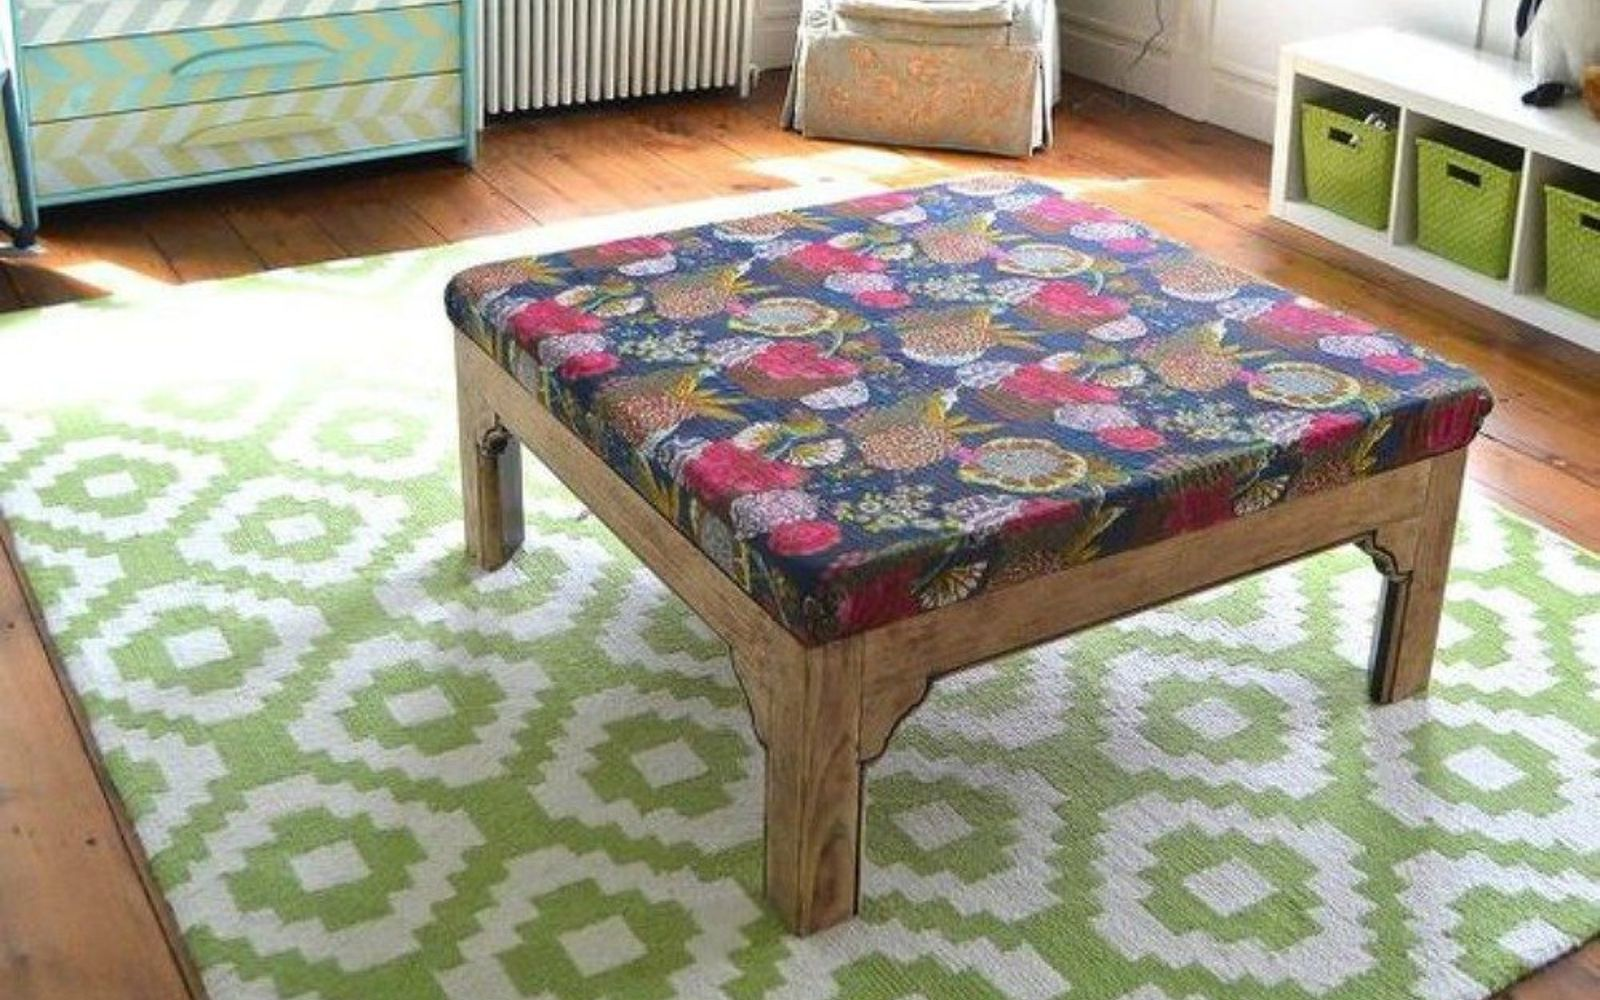 12 gorgeous ottoman ideas that will make you want to put your feet